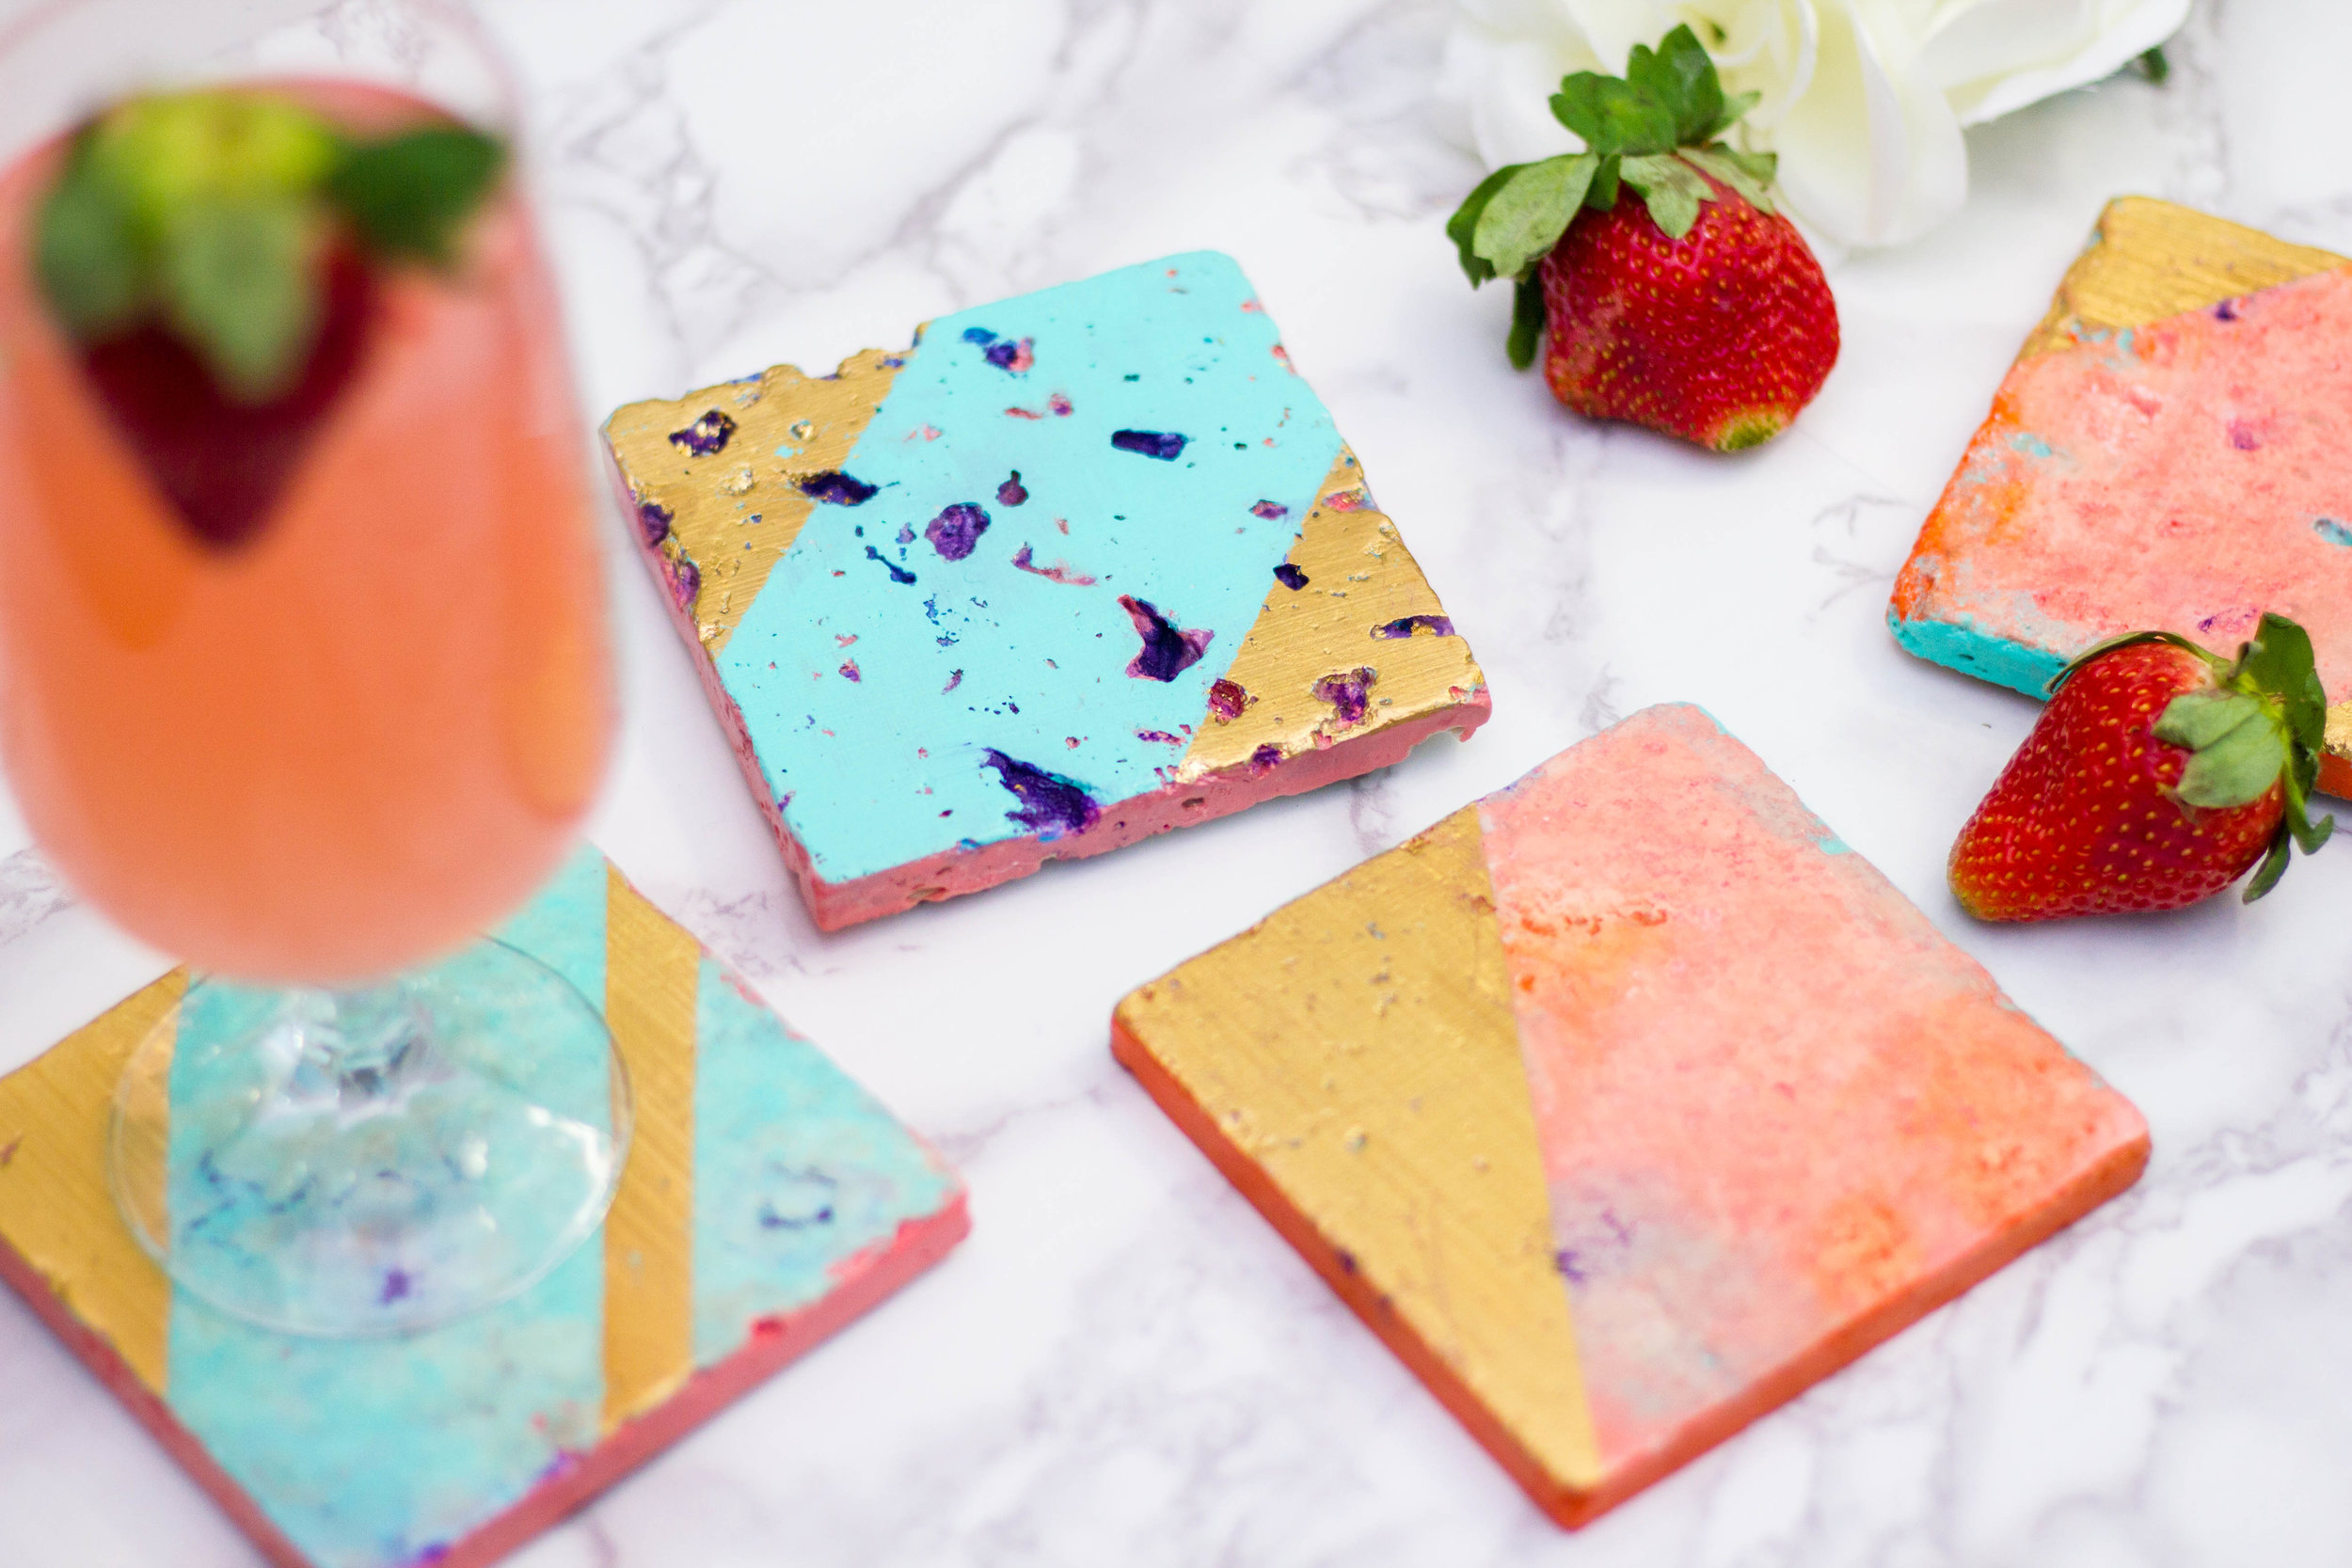 DIY Colorful Tile Coasters (COMING SOON)